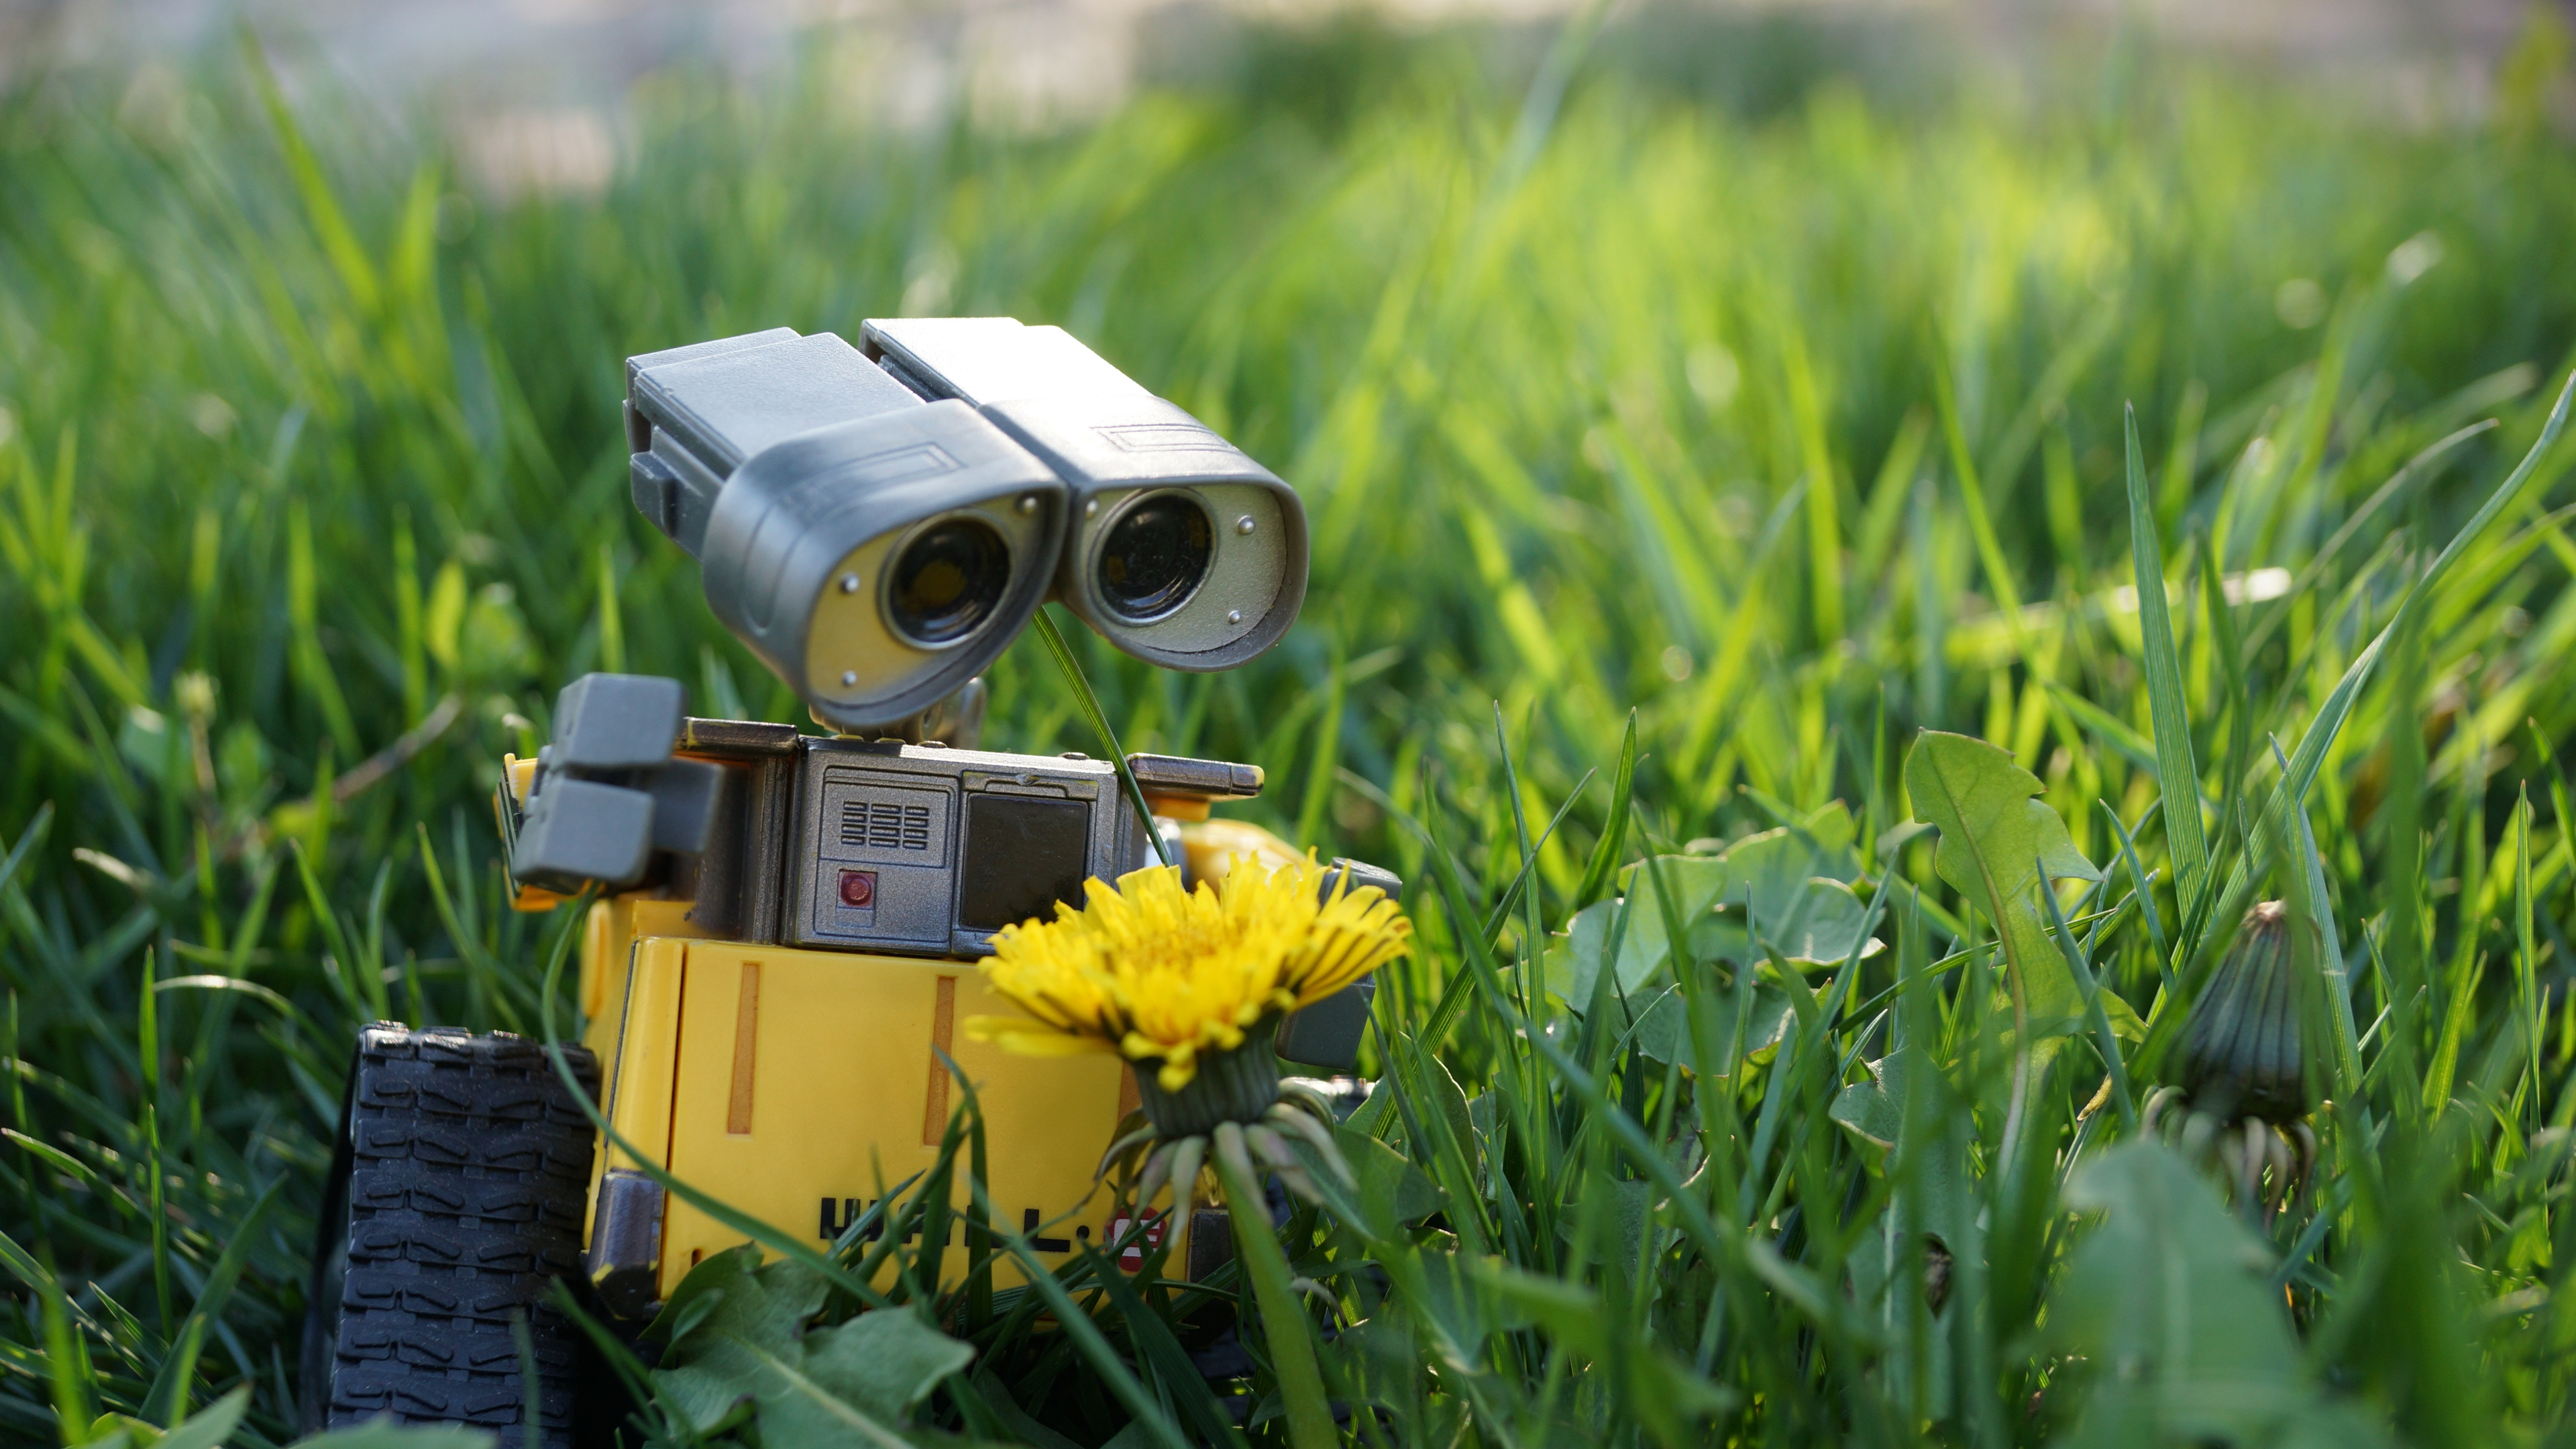 3840x2400 Wall E Robot 4k HD 4k Wallpapers, Images ...